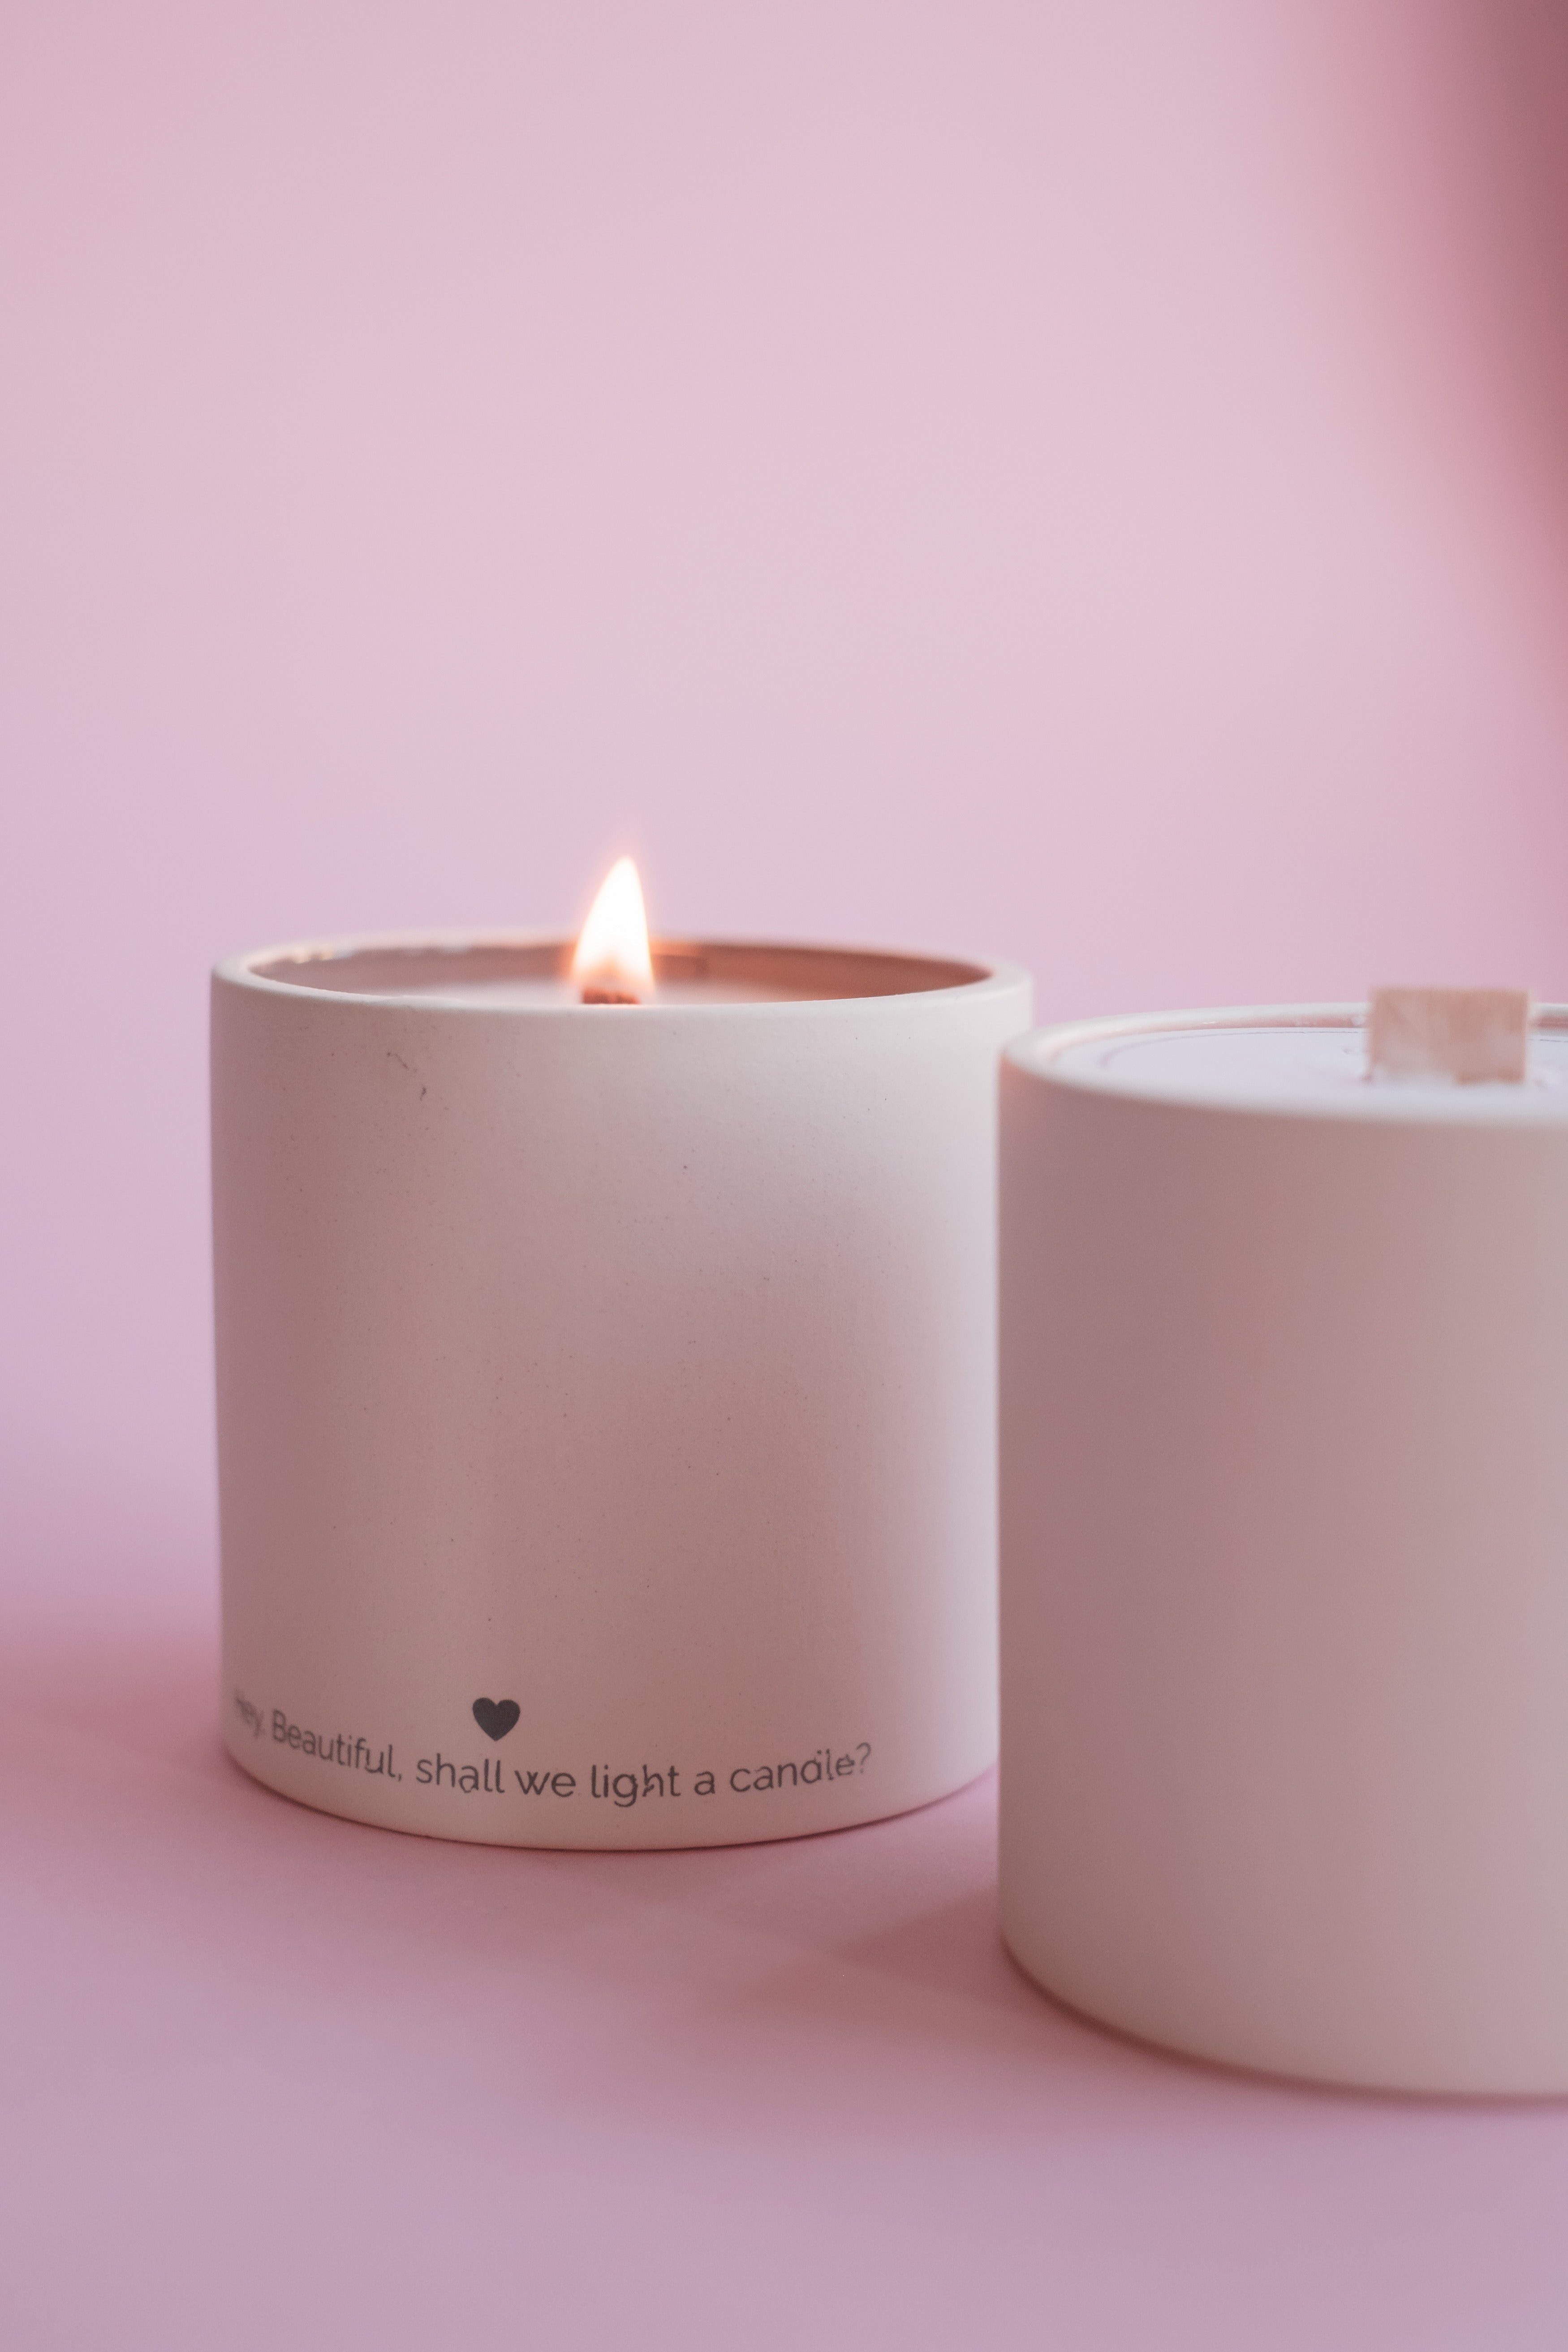 PageProductDetails:products.candle.title